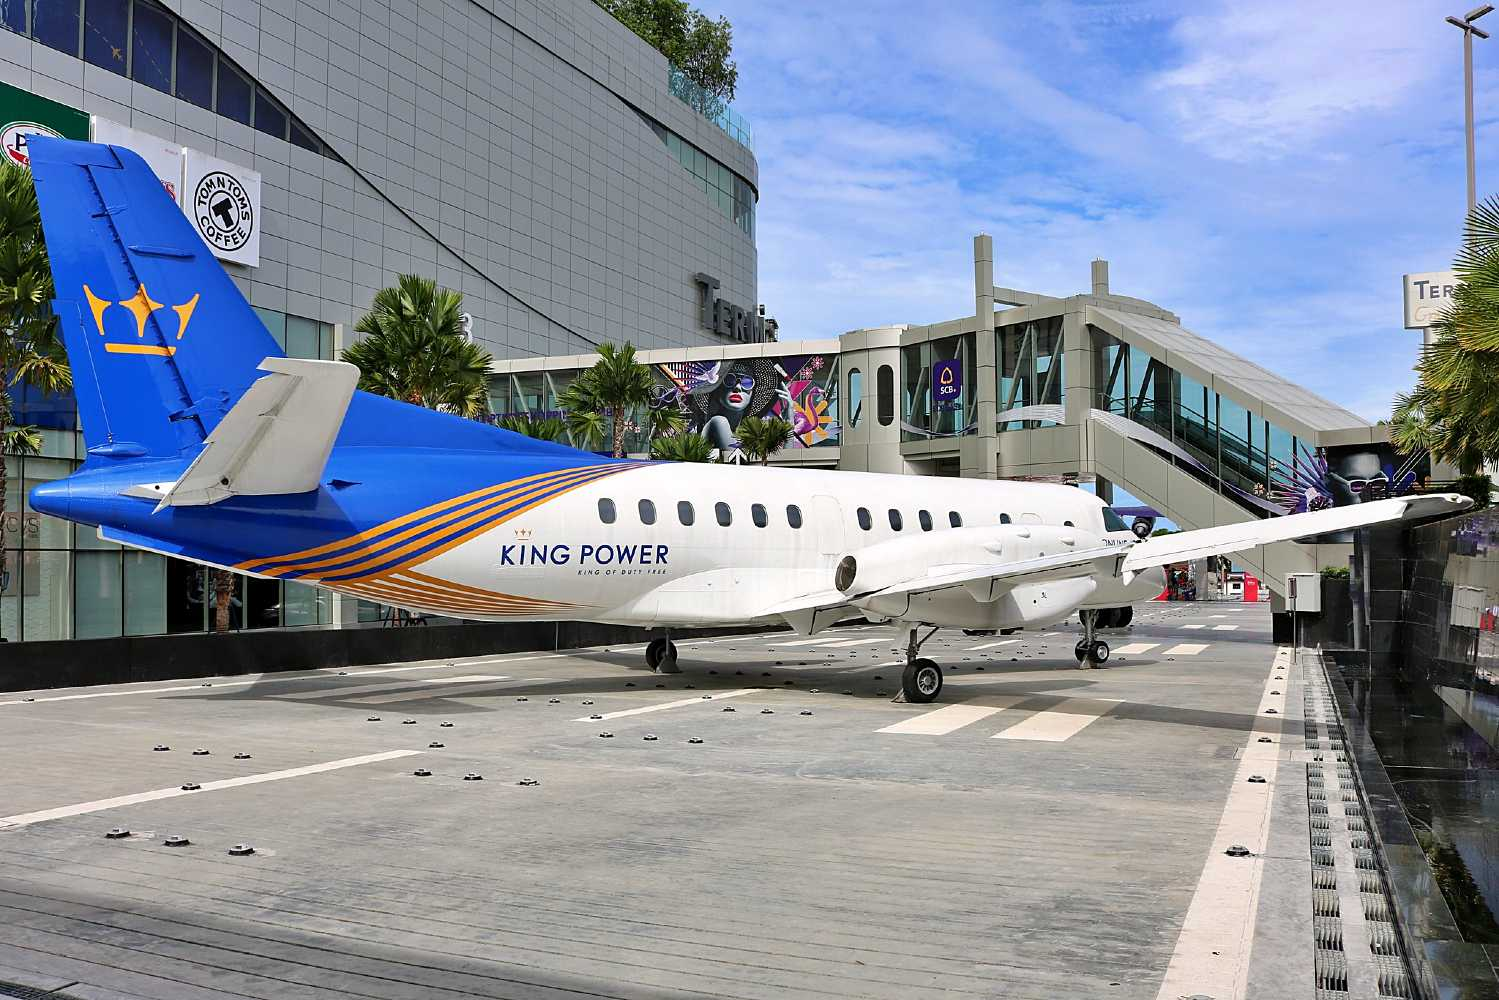 Plane on runway in front of Terminal 21 in Pattaya